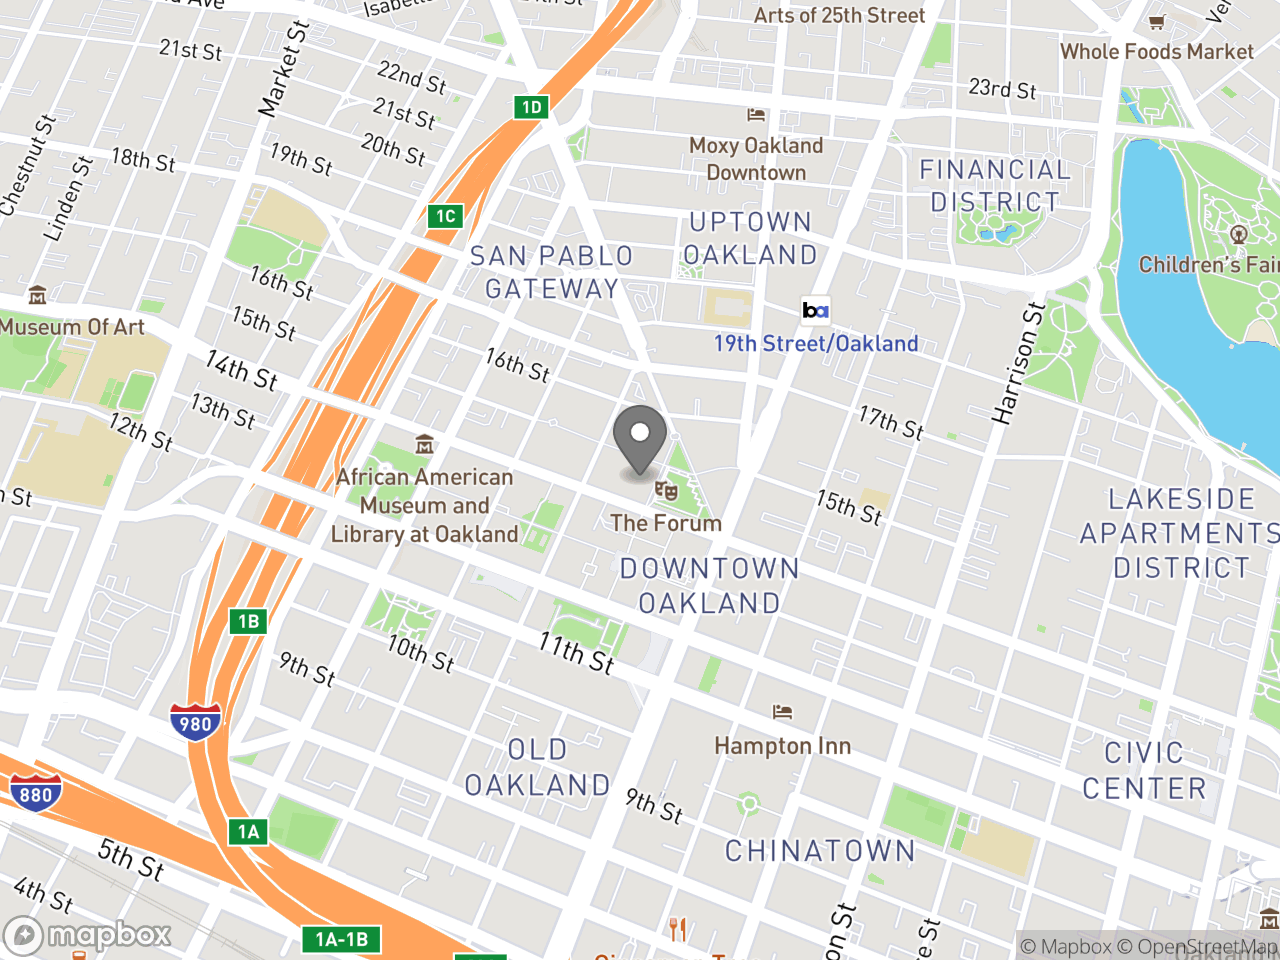 Map image for Civil Service Board Meeting, April 19, 2018, located at 1 Frank H. Ogawa Plaza in Oakland, CA 94612